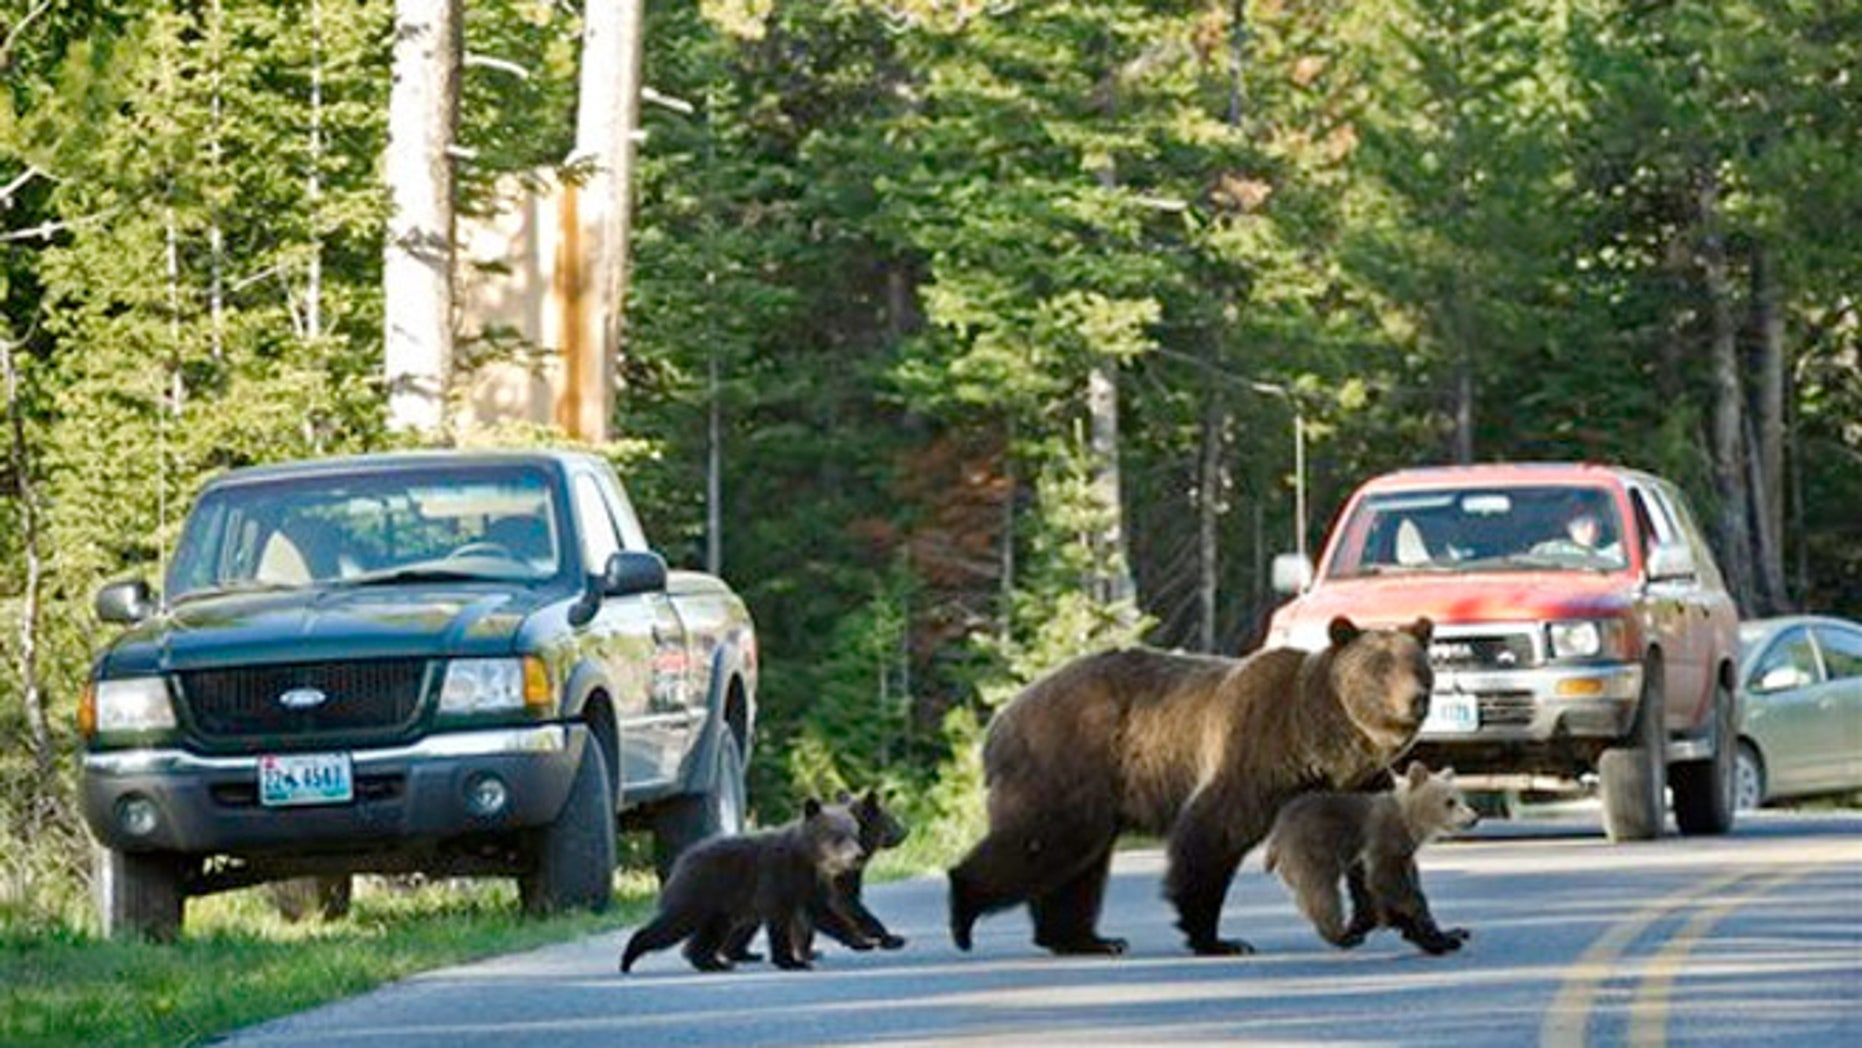 Grizzly bear No. 399 crossing a road in Grand Teton National Park, Wyo., with her three cubs.